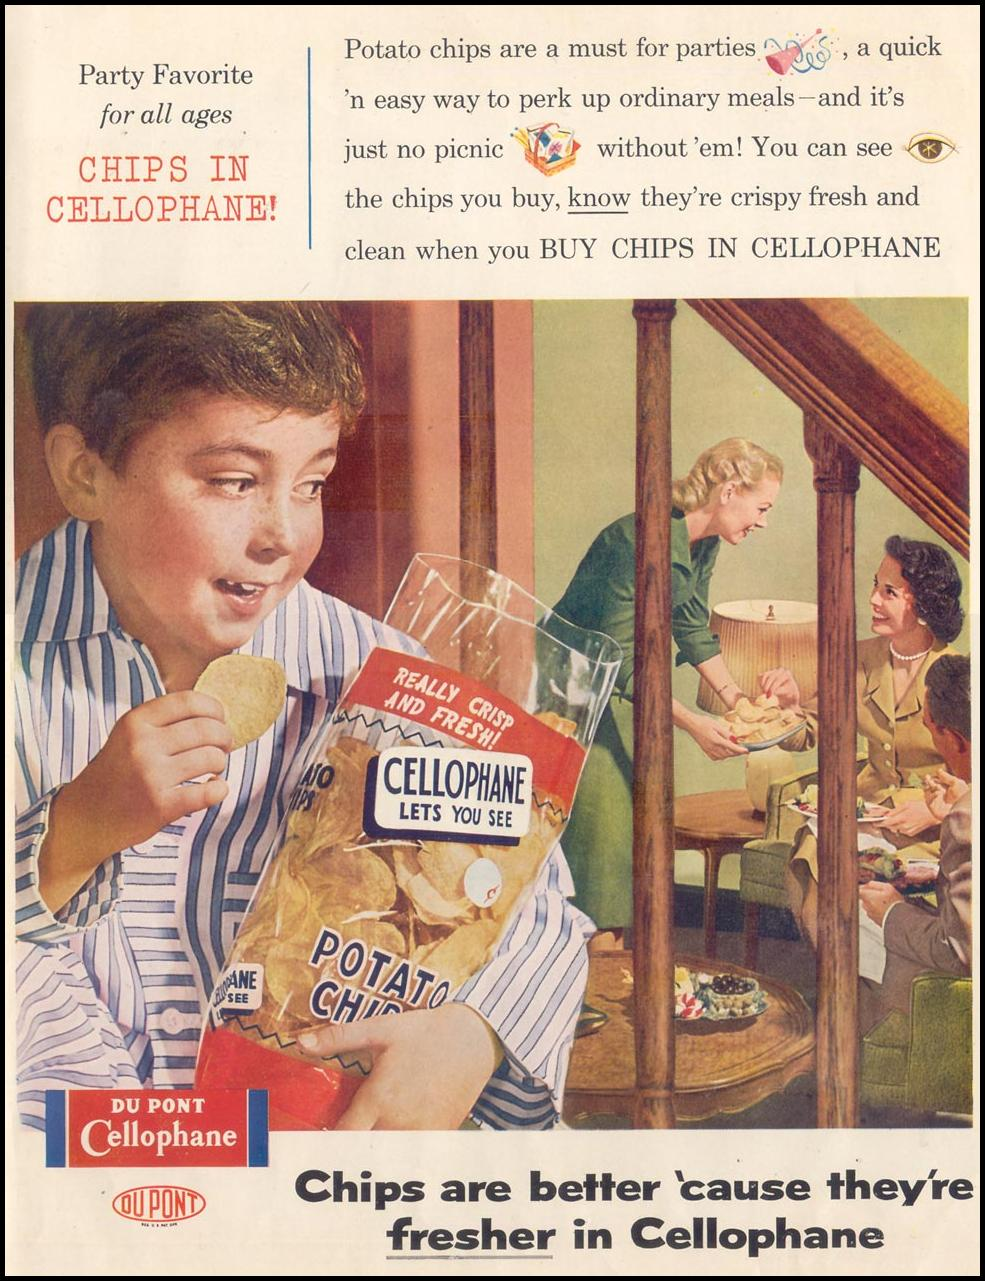 DU PONT CELLOPHANE SATURDAY EVENING POST 06/04/1955 INSIDE BACK